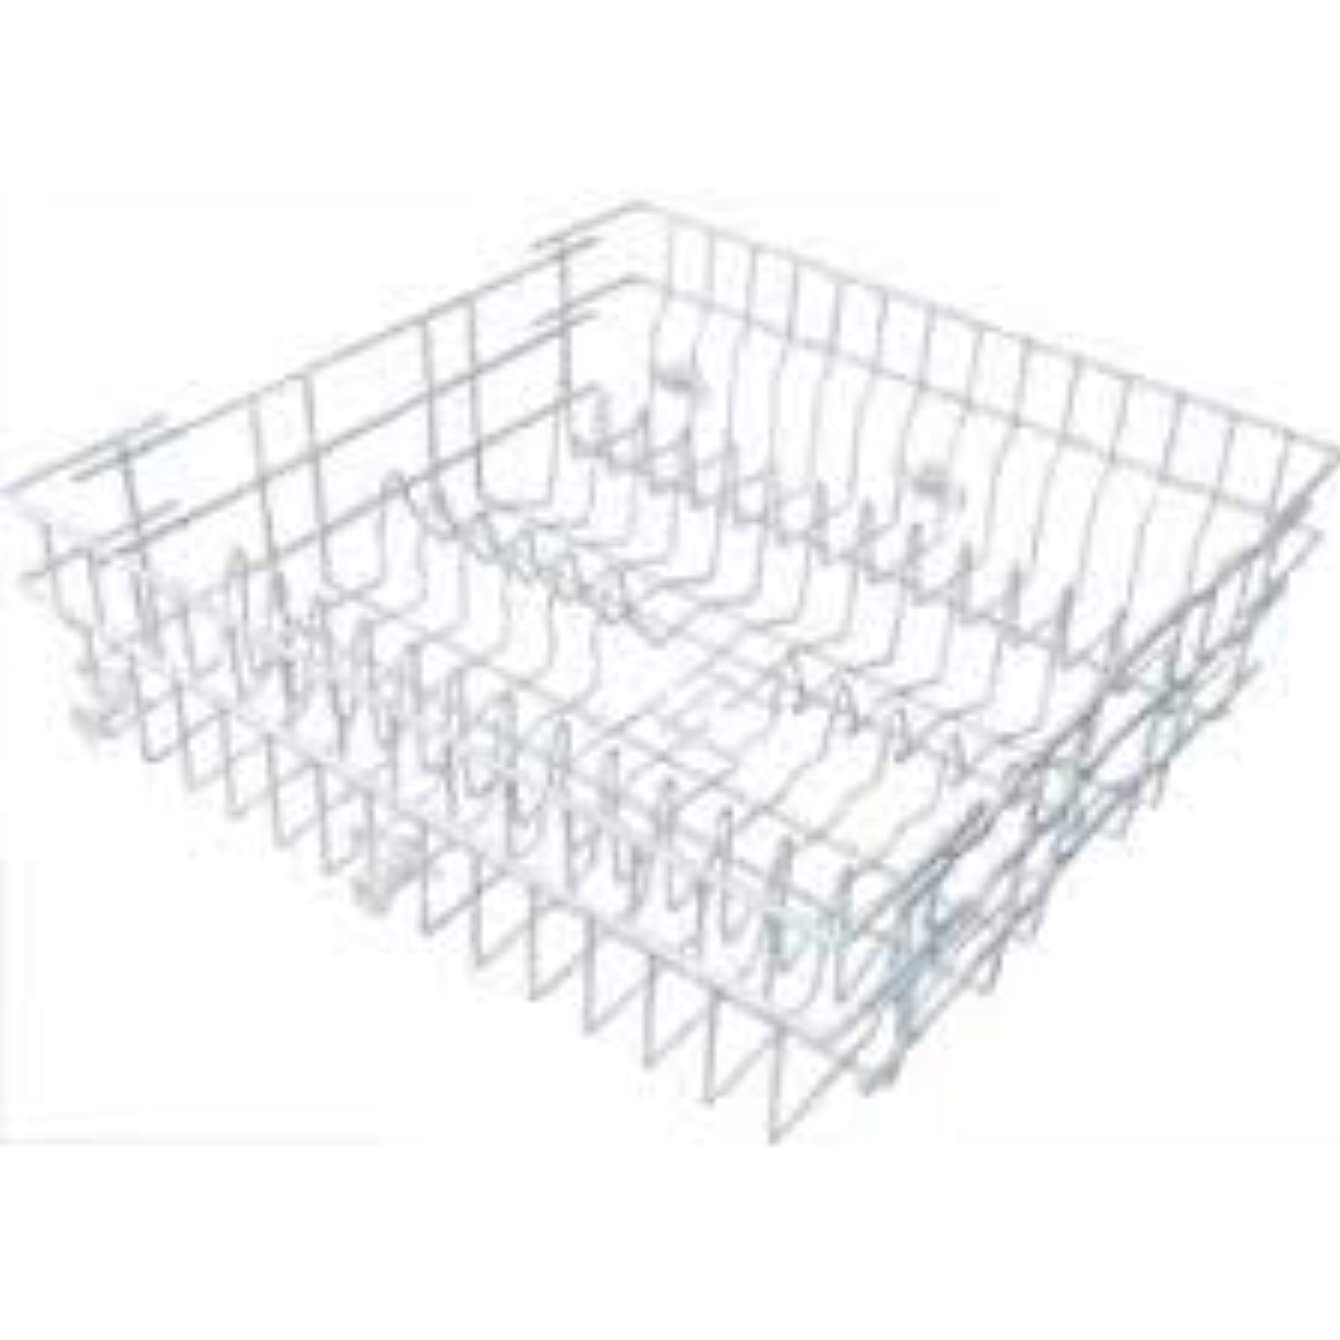 Edgewater Parts WD28X10230 Dishwasher Upper Rack Compatible With GE Dishwasher